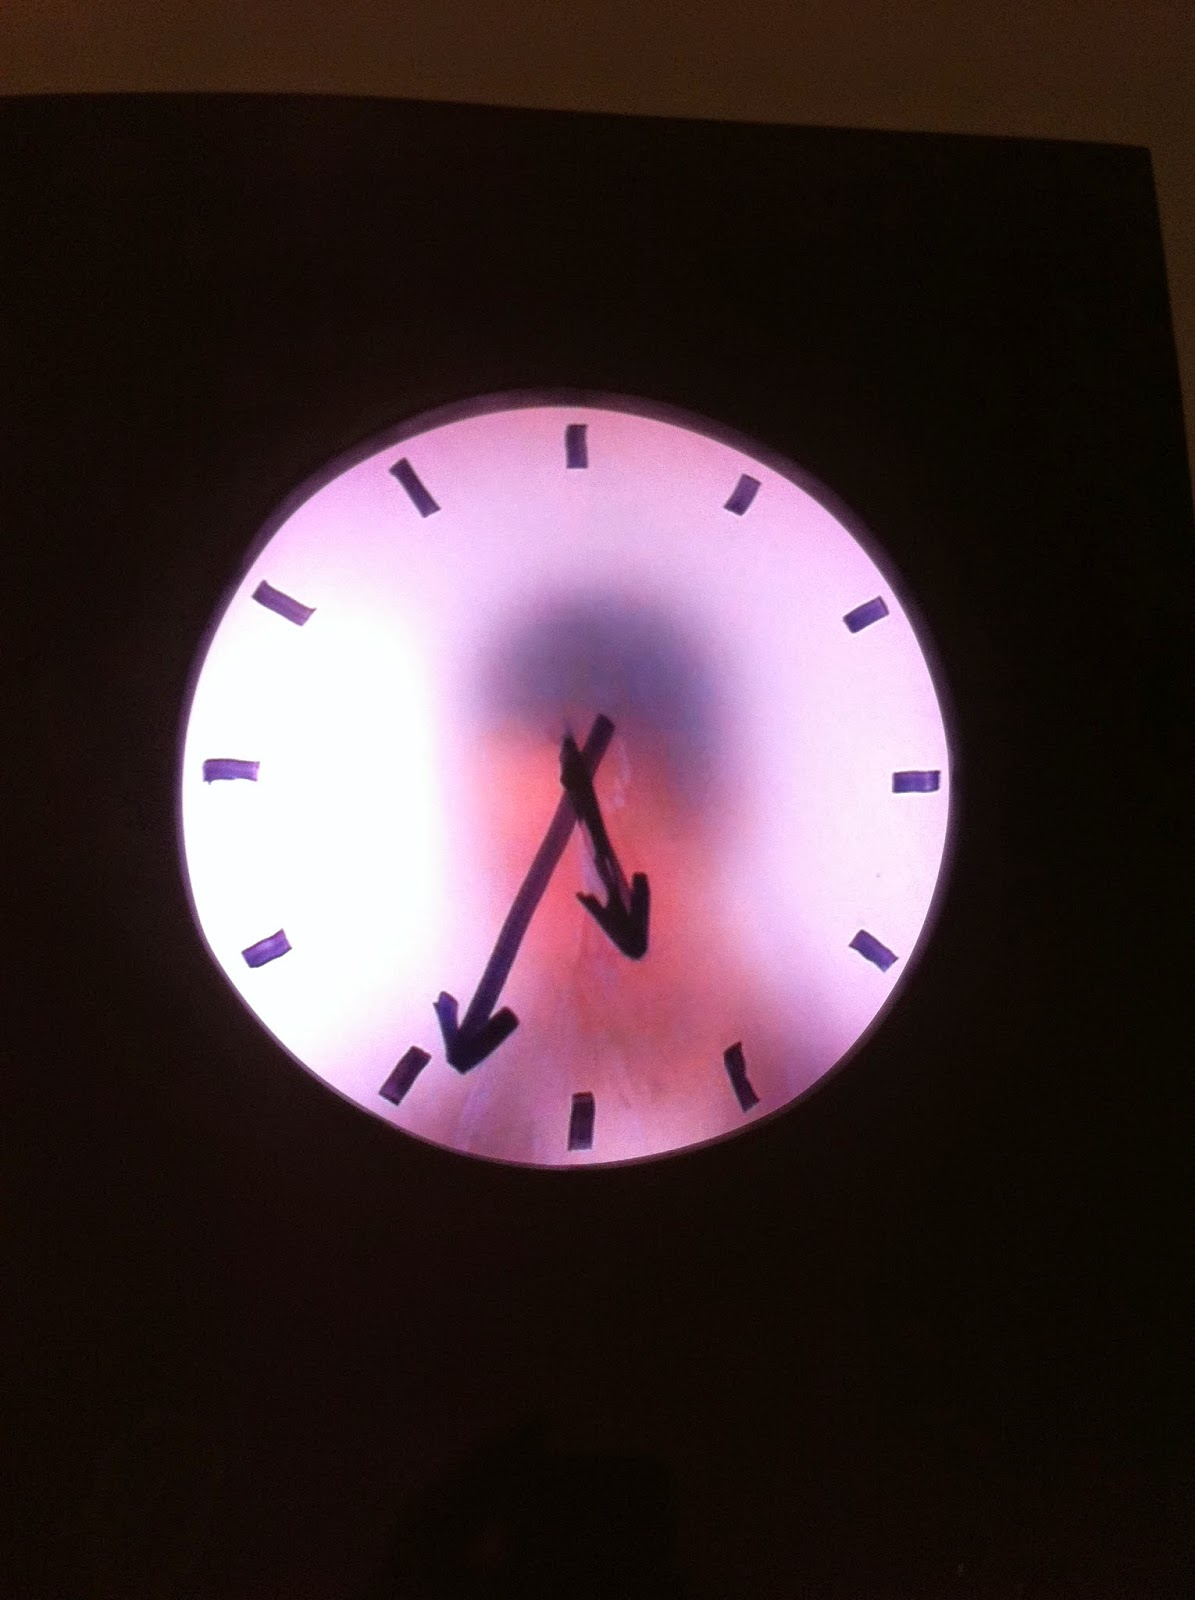 Horloge Grandfather clock, real time